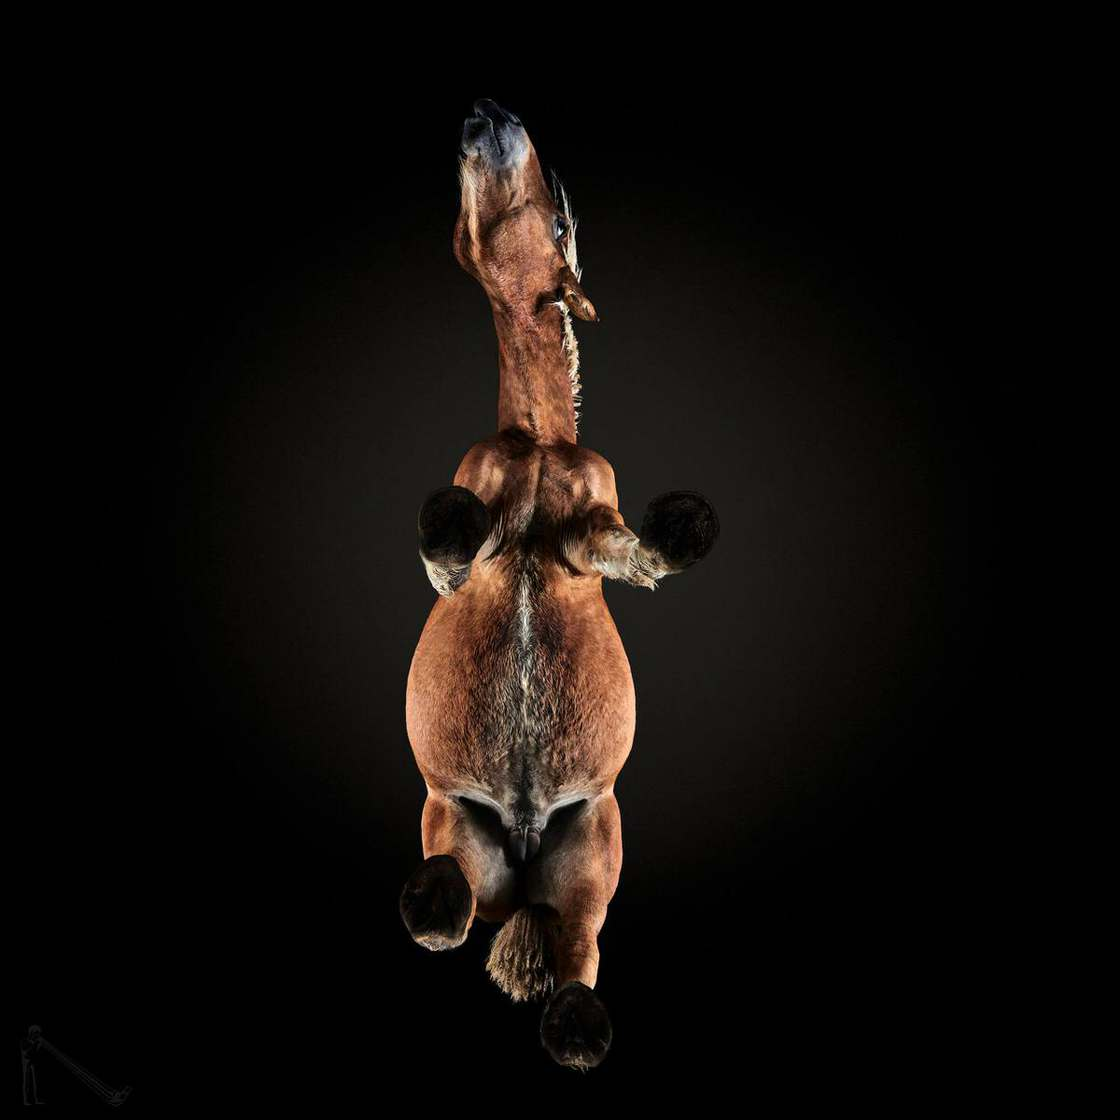 Under Horse - Photographing the underside of horses